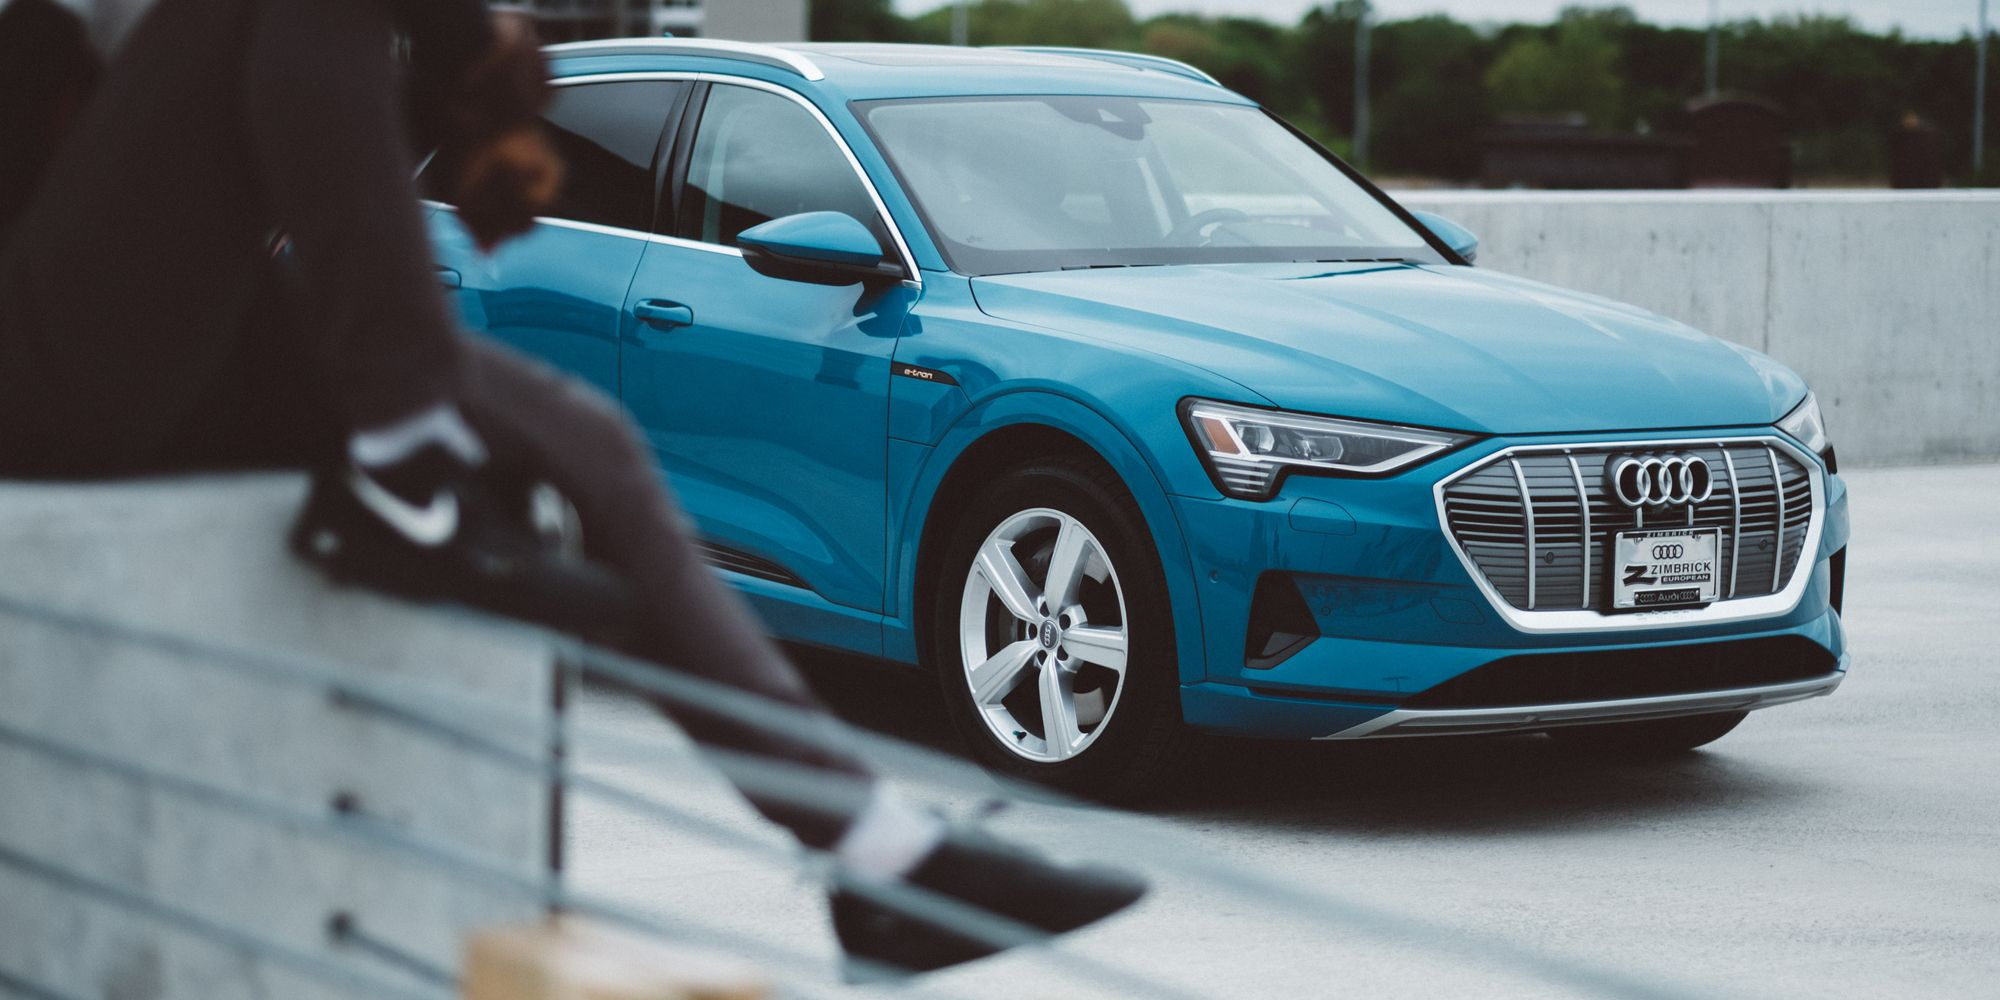 The Way Electric Should Be Eye Catching And Electrifying The Audi E Tron Is Here And It Boasts A Strong Yet Sleek Suv Design But Audi E Tron Audi E Tron